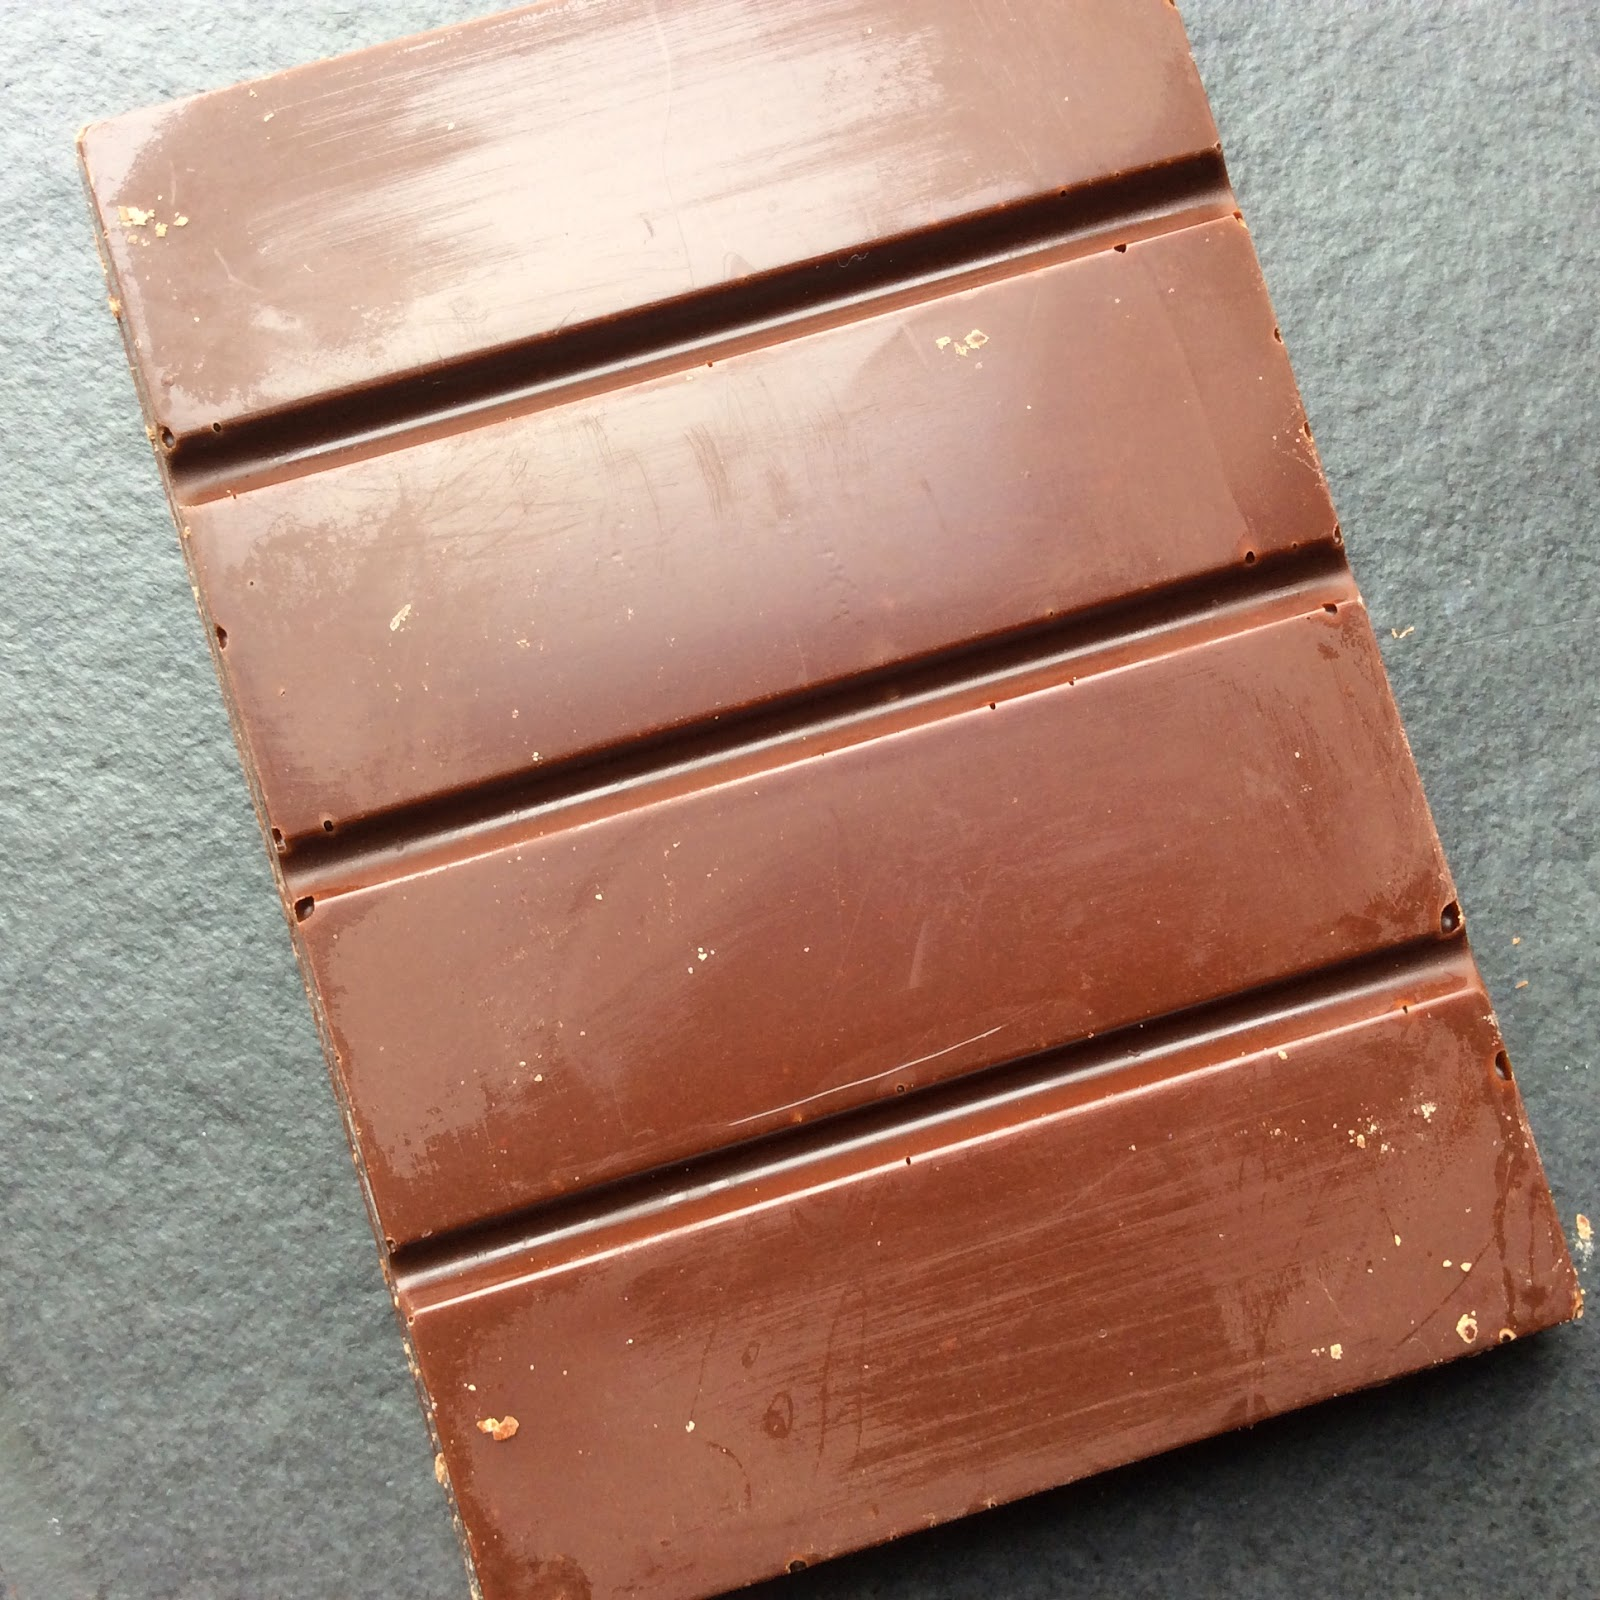 http://chocchick.blogspot.co.uk/2015/03/sea-salted-caramel-bar-paul-young.html